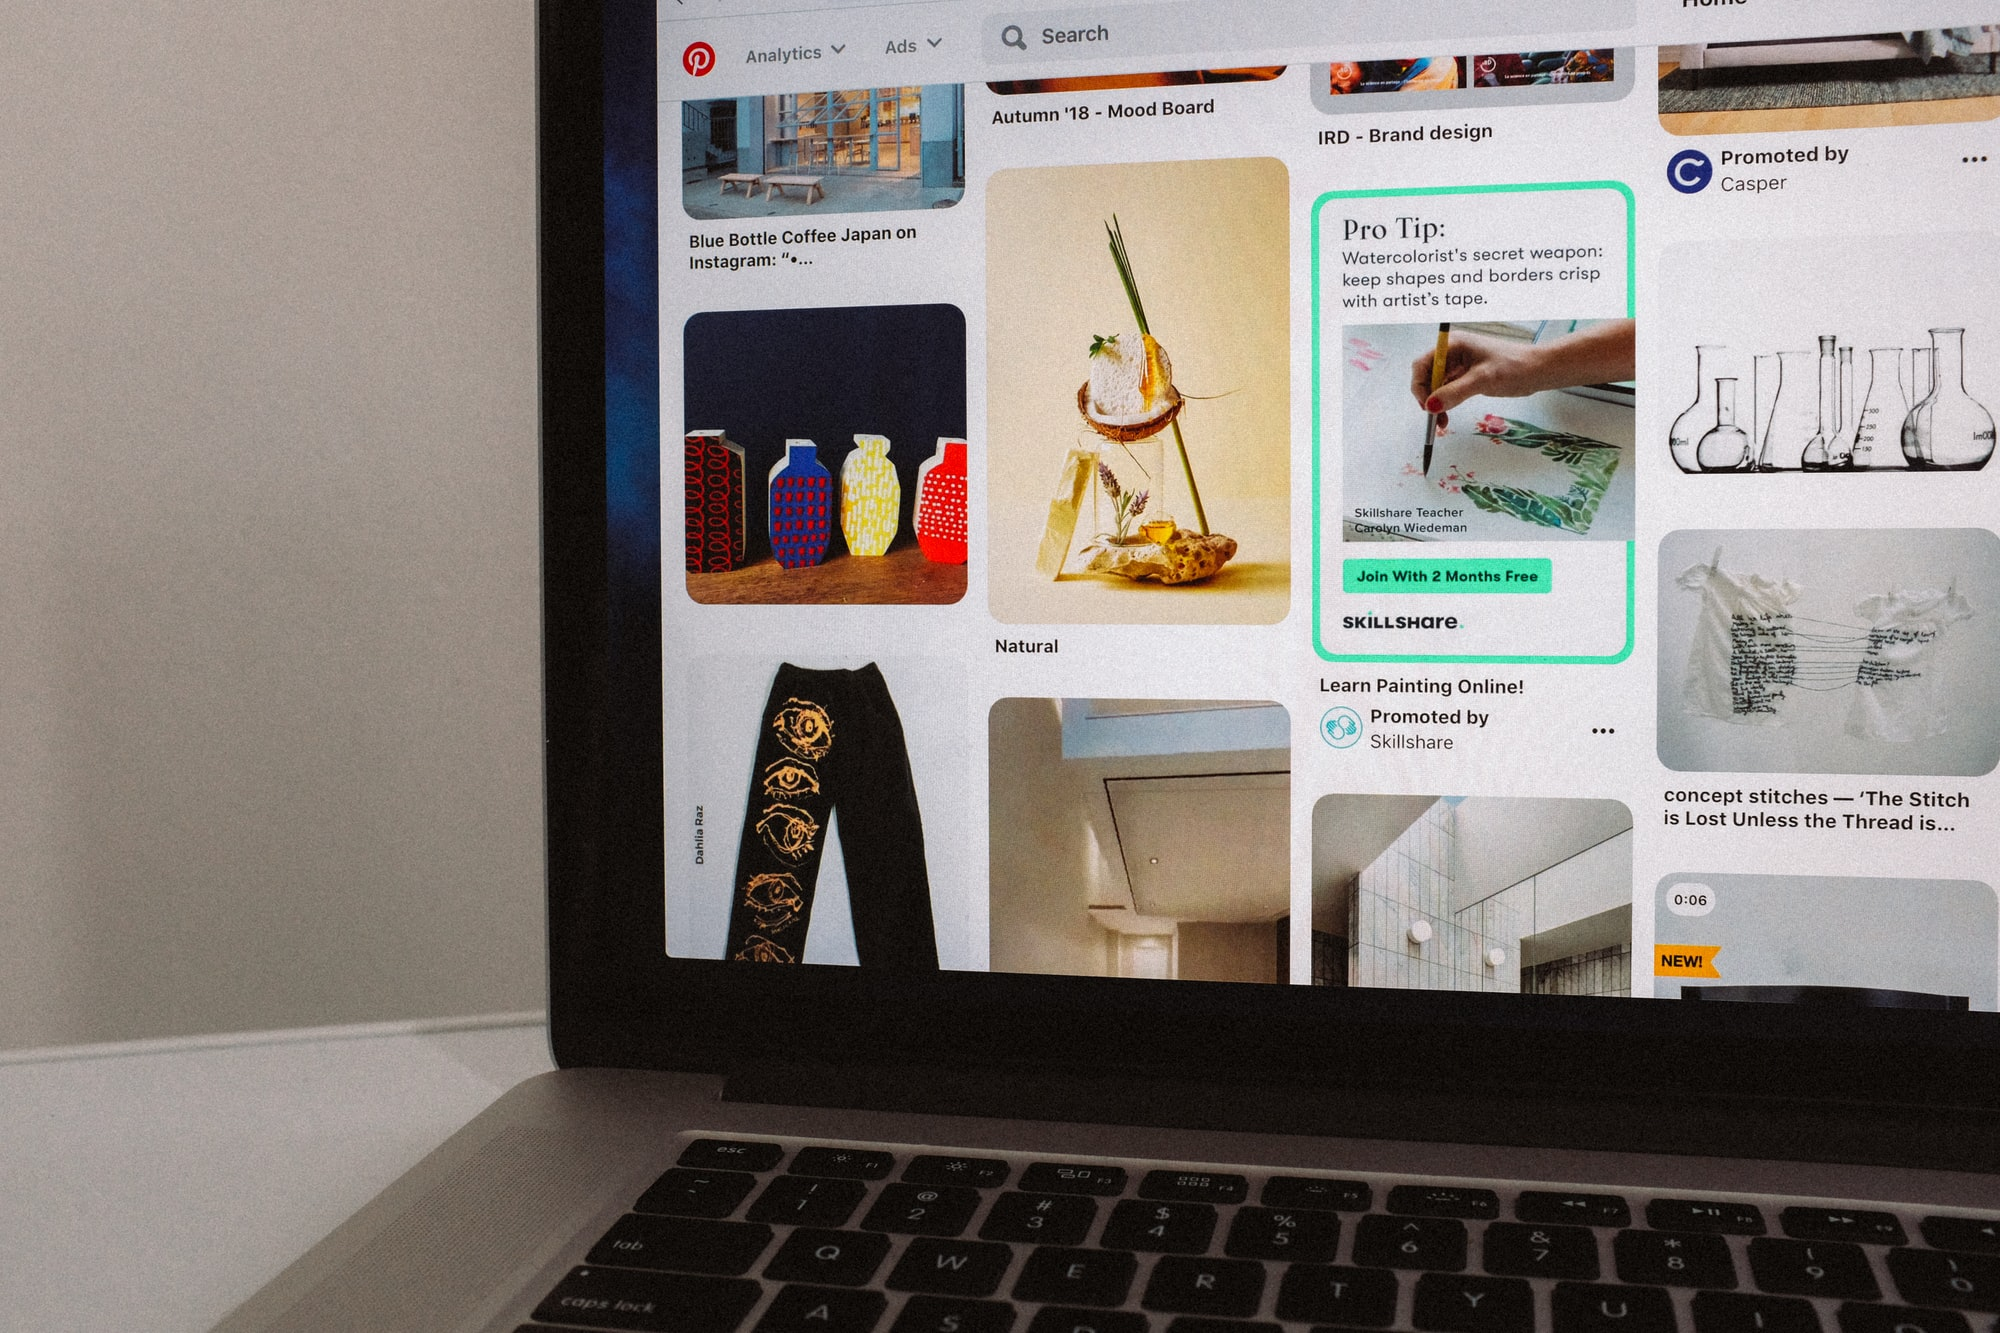 How to Claim a Website on Pinterest in 4 Quick Steps